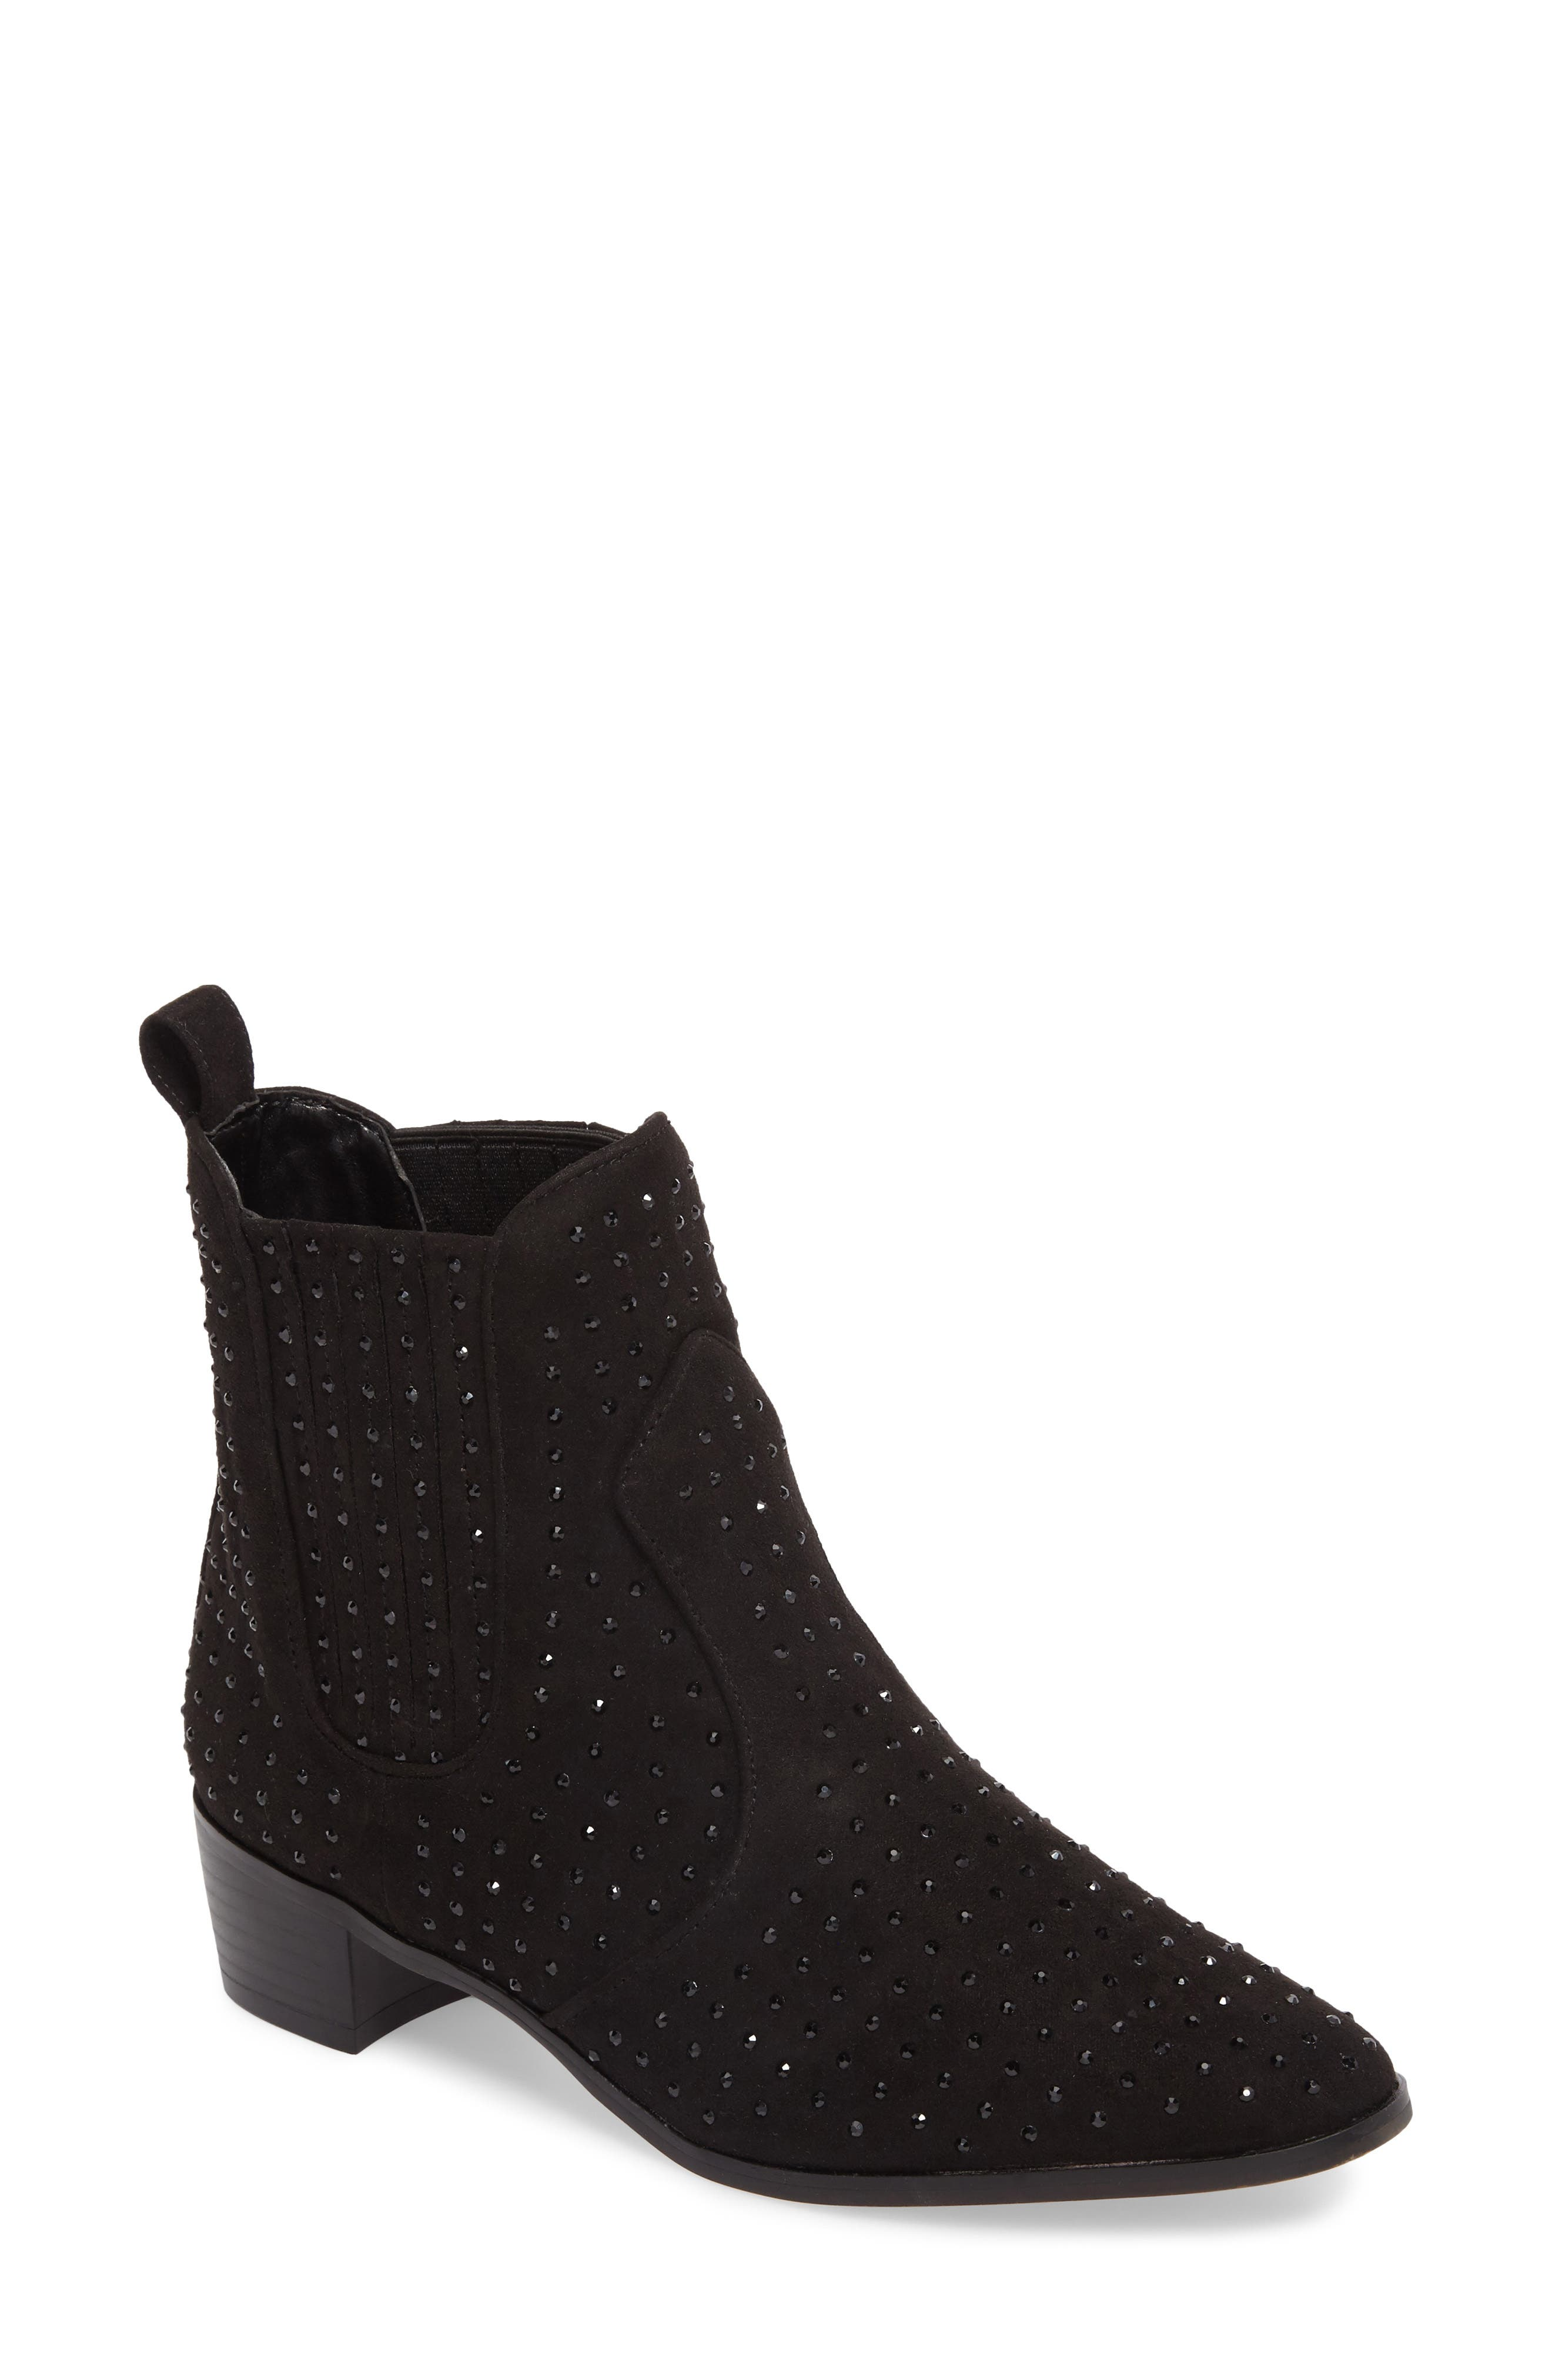 Ryan Bootie,                             Main thumbnail 1, color,                             Black Suede